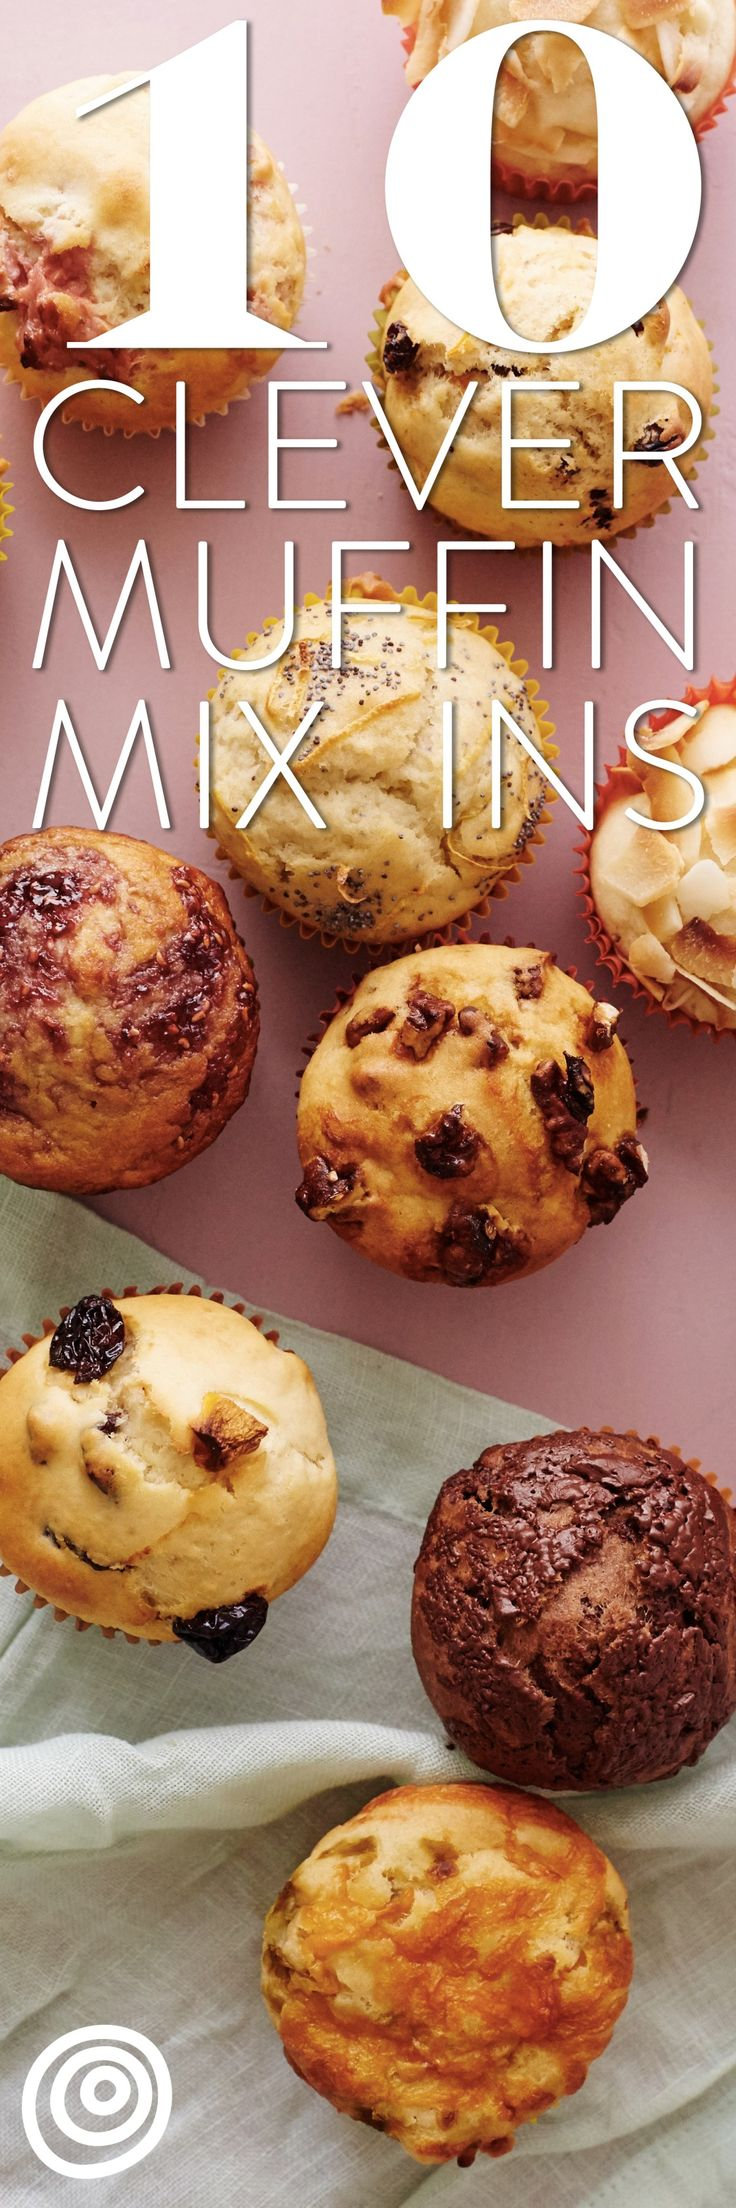 10 Quick and Easy Ways to Upgrade a Basic Plain Muffin Batter Recipe. Mix in one of these sweet or savory options for a breakfast treat like no other! if you love baking new recipes on the weekend (or even on weekday mornings), these ideas will keep you going for days. From traditional like lemon poppyseed and chocolate chip to unique like cheese and spicy jalapeno, there's something for everyone! They're great to bake with your kids too!